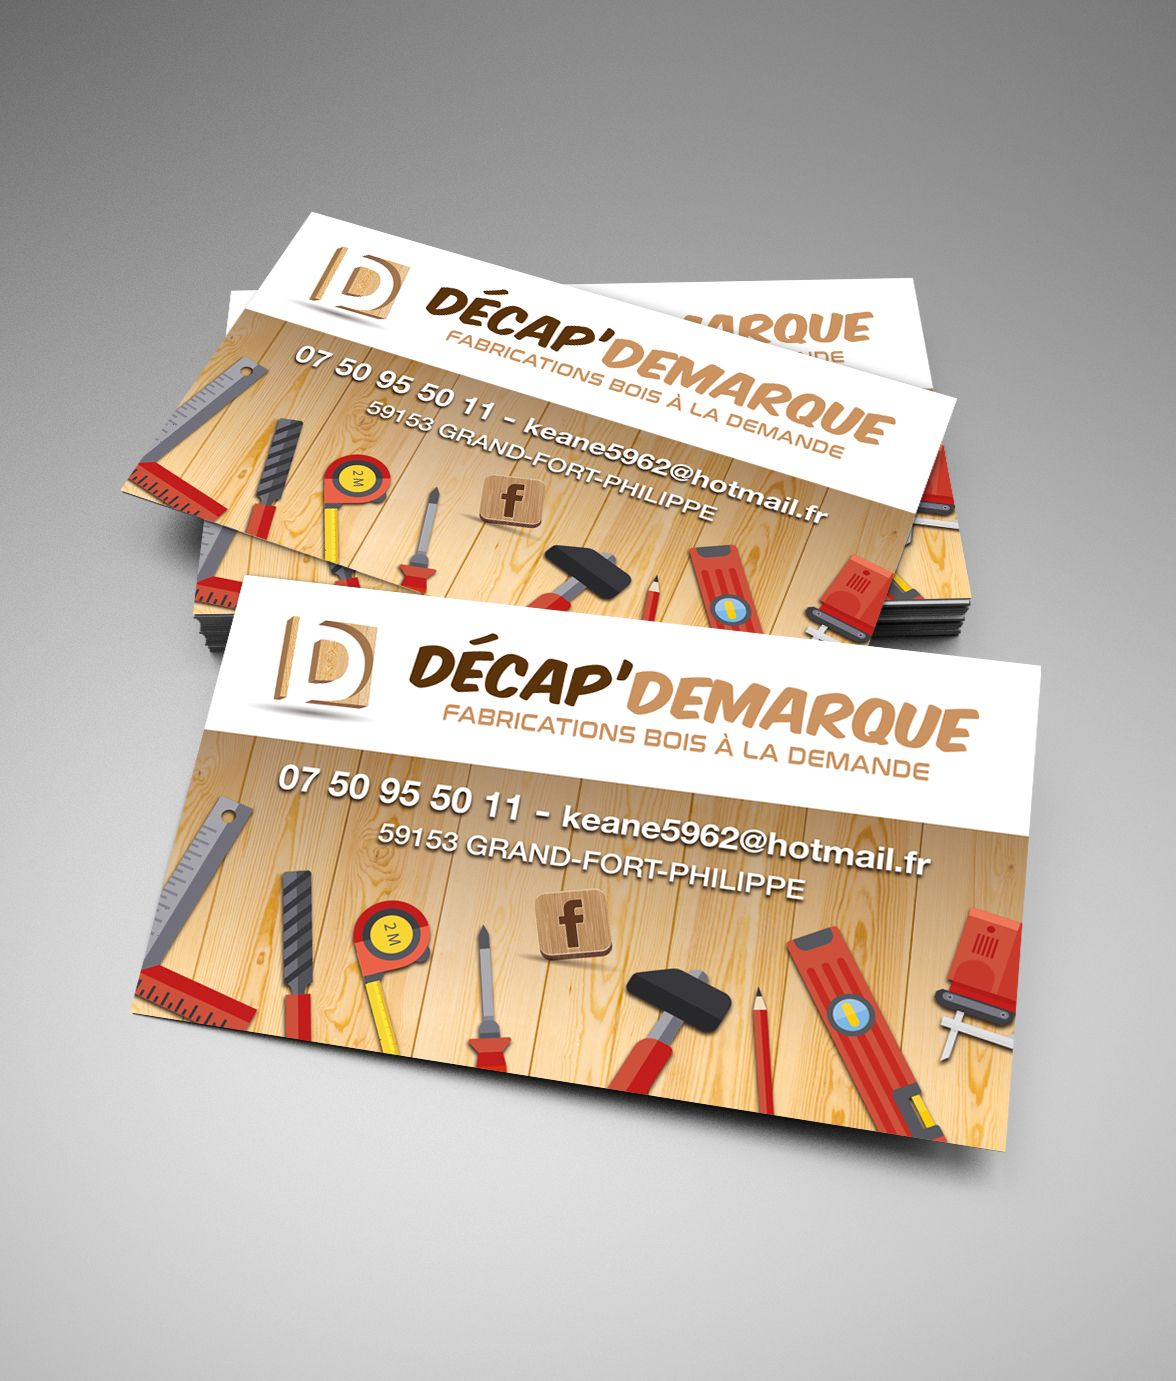 Decap Demarque Carte Visiter